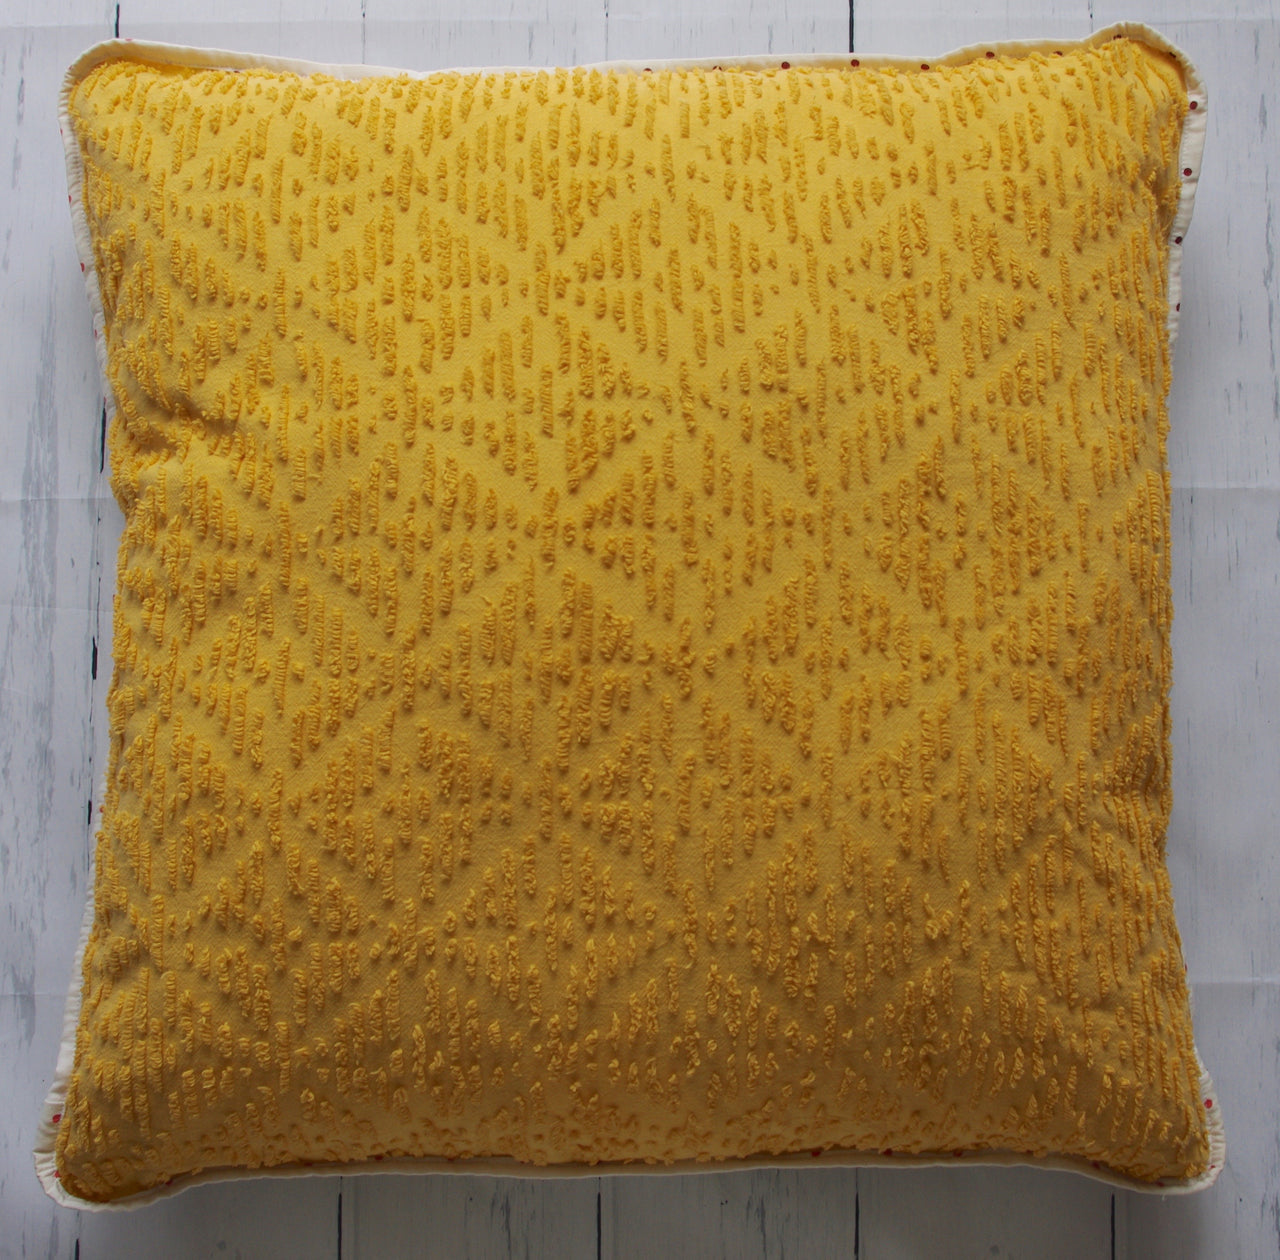 eco-friendly-sustainable-repurposed-handmade-home-decor-floor-pillow-gold-chenille-floral-floor-pillow-front